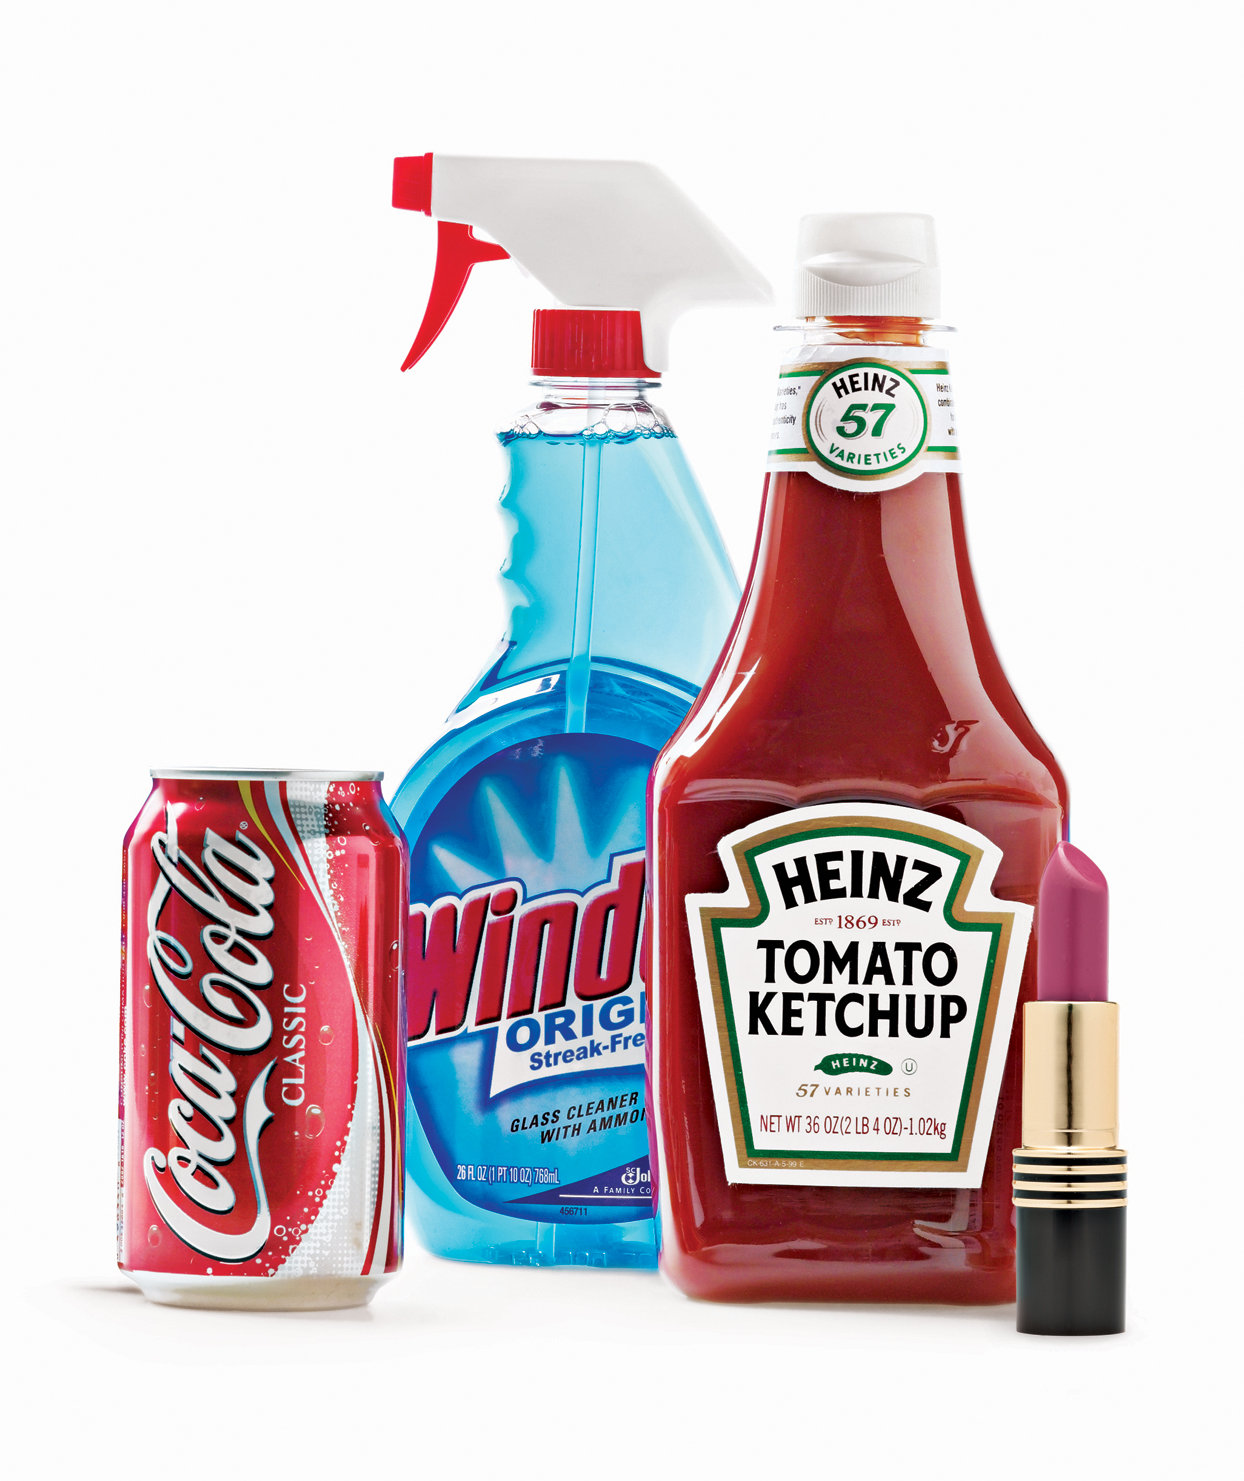 ketchup-soda-lipstick-products